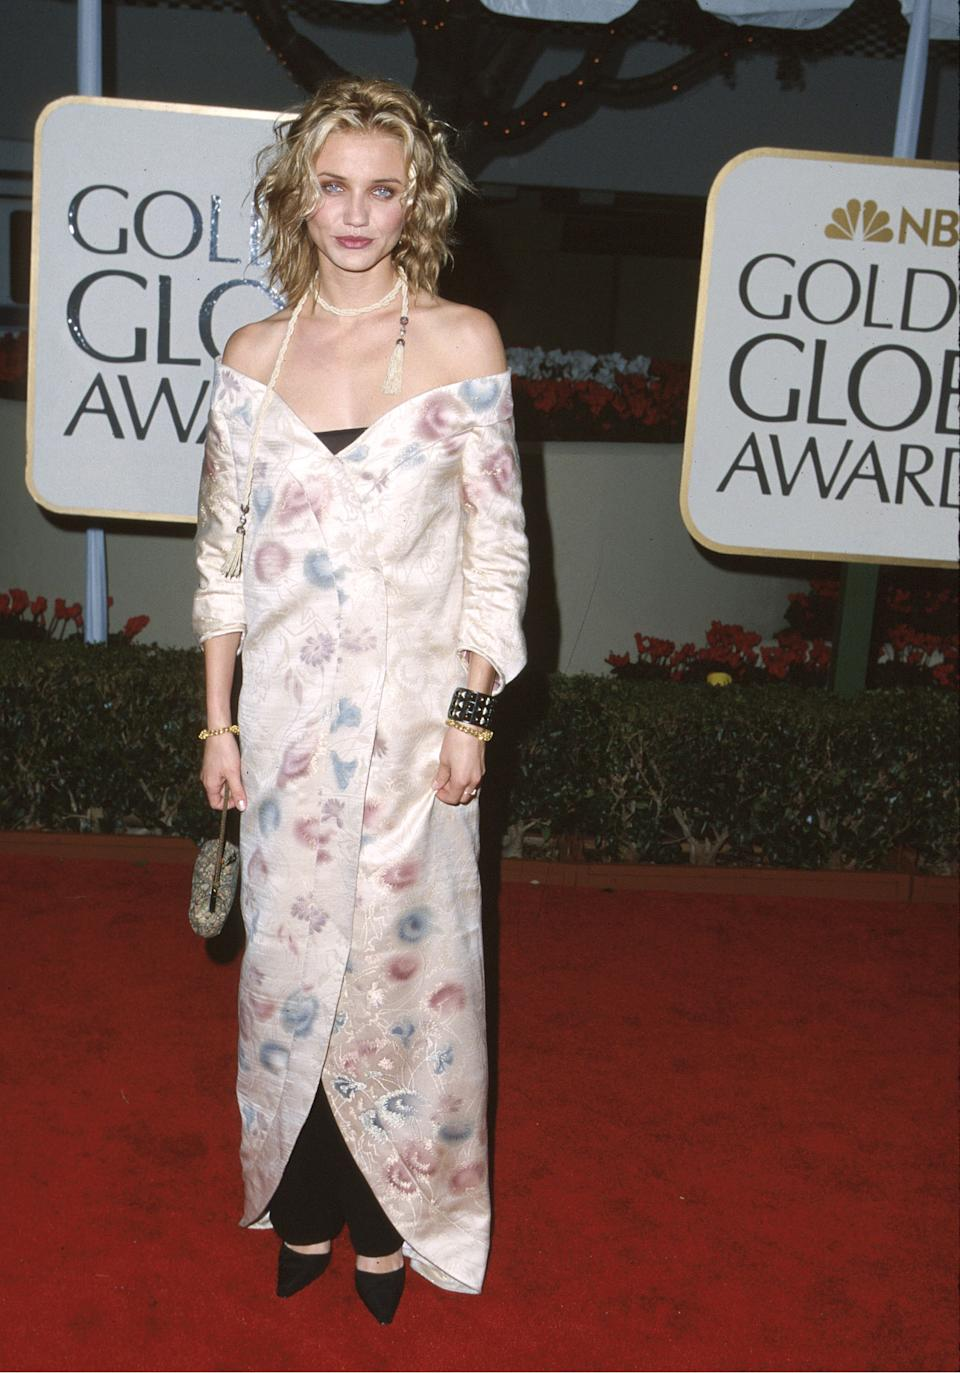 <p>In Cameron Diaz's defense, the late '90s were a weird time for fashion, so pairing a nightgown with office trousers and using a rope as a scarf seems very fitting. <em>(Image via Getty Images)</em></p>